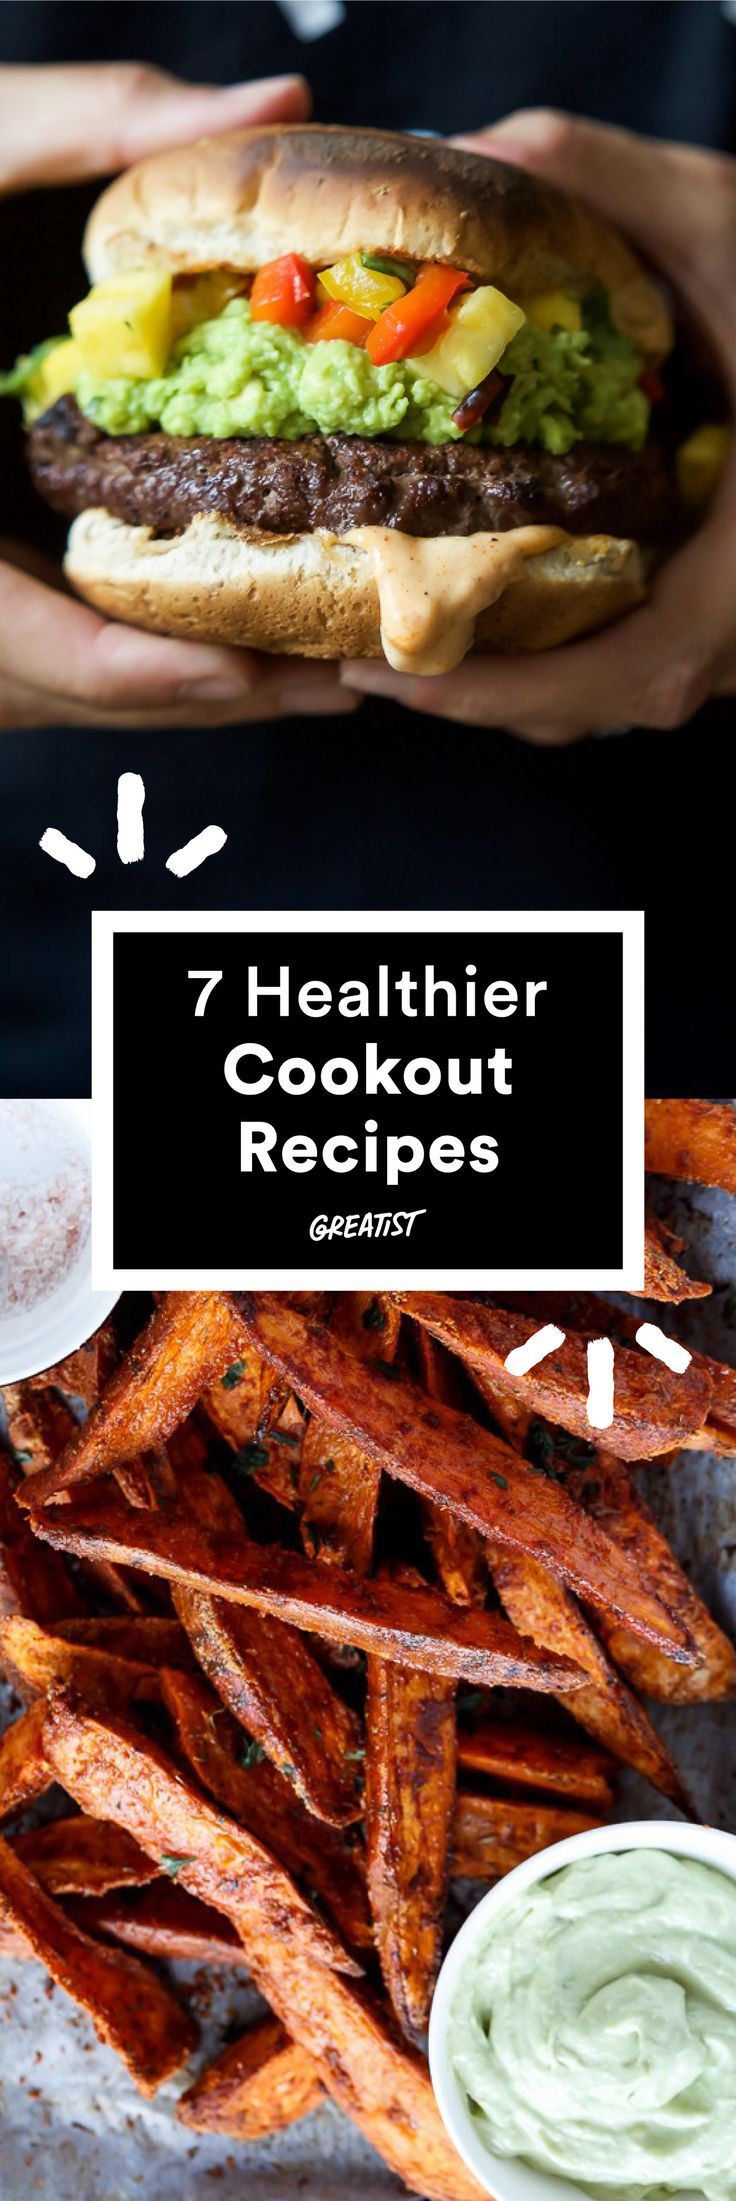 214 best bbq images on pinterest grilling recipes recipes and